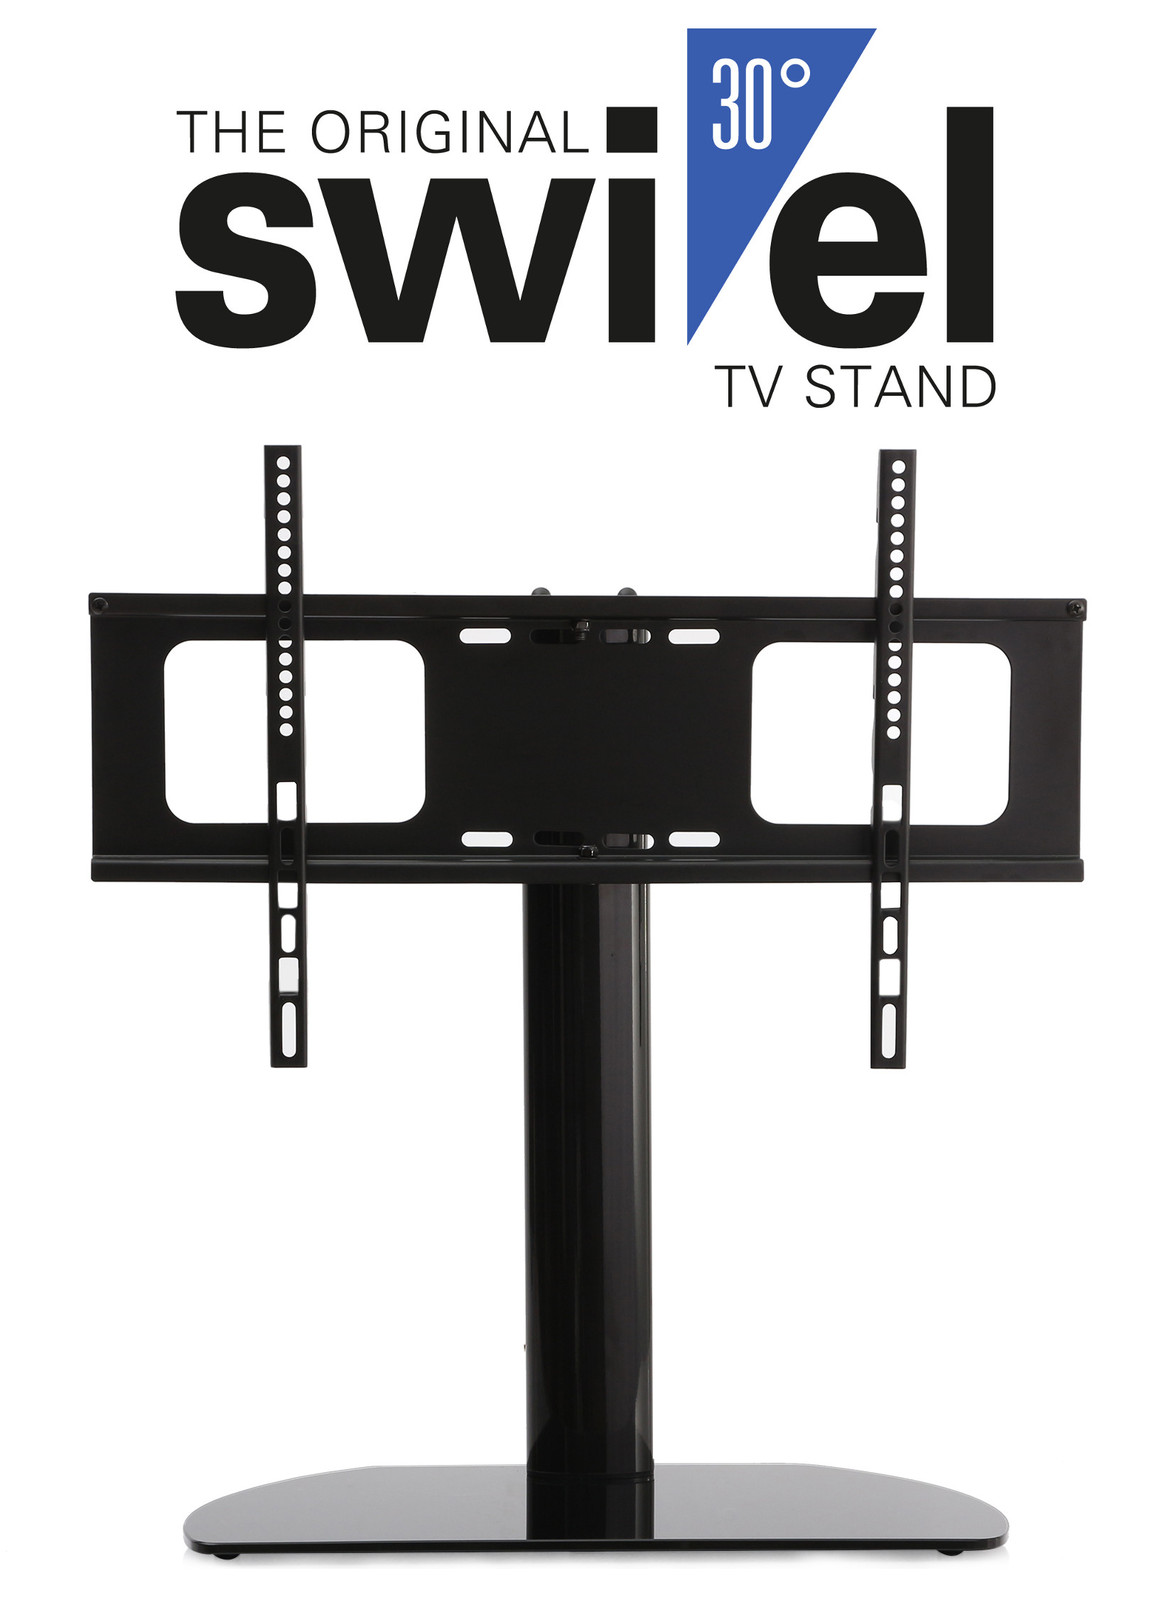 New Universal Replacement Swivel TV Stand/Base for Samsung PN60F5300